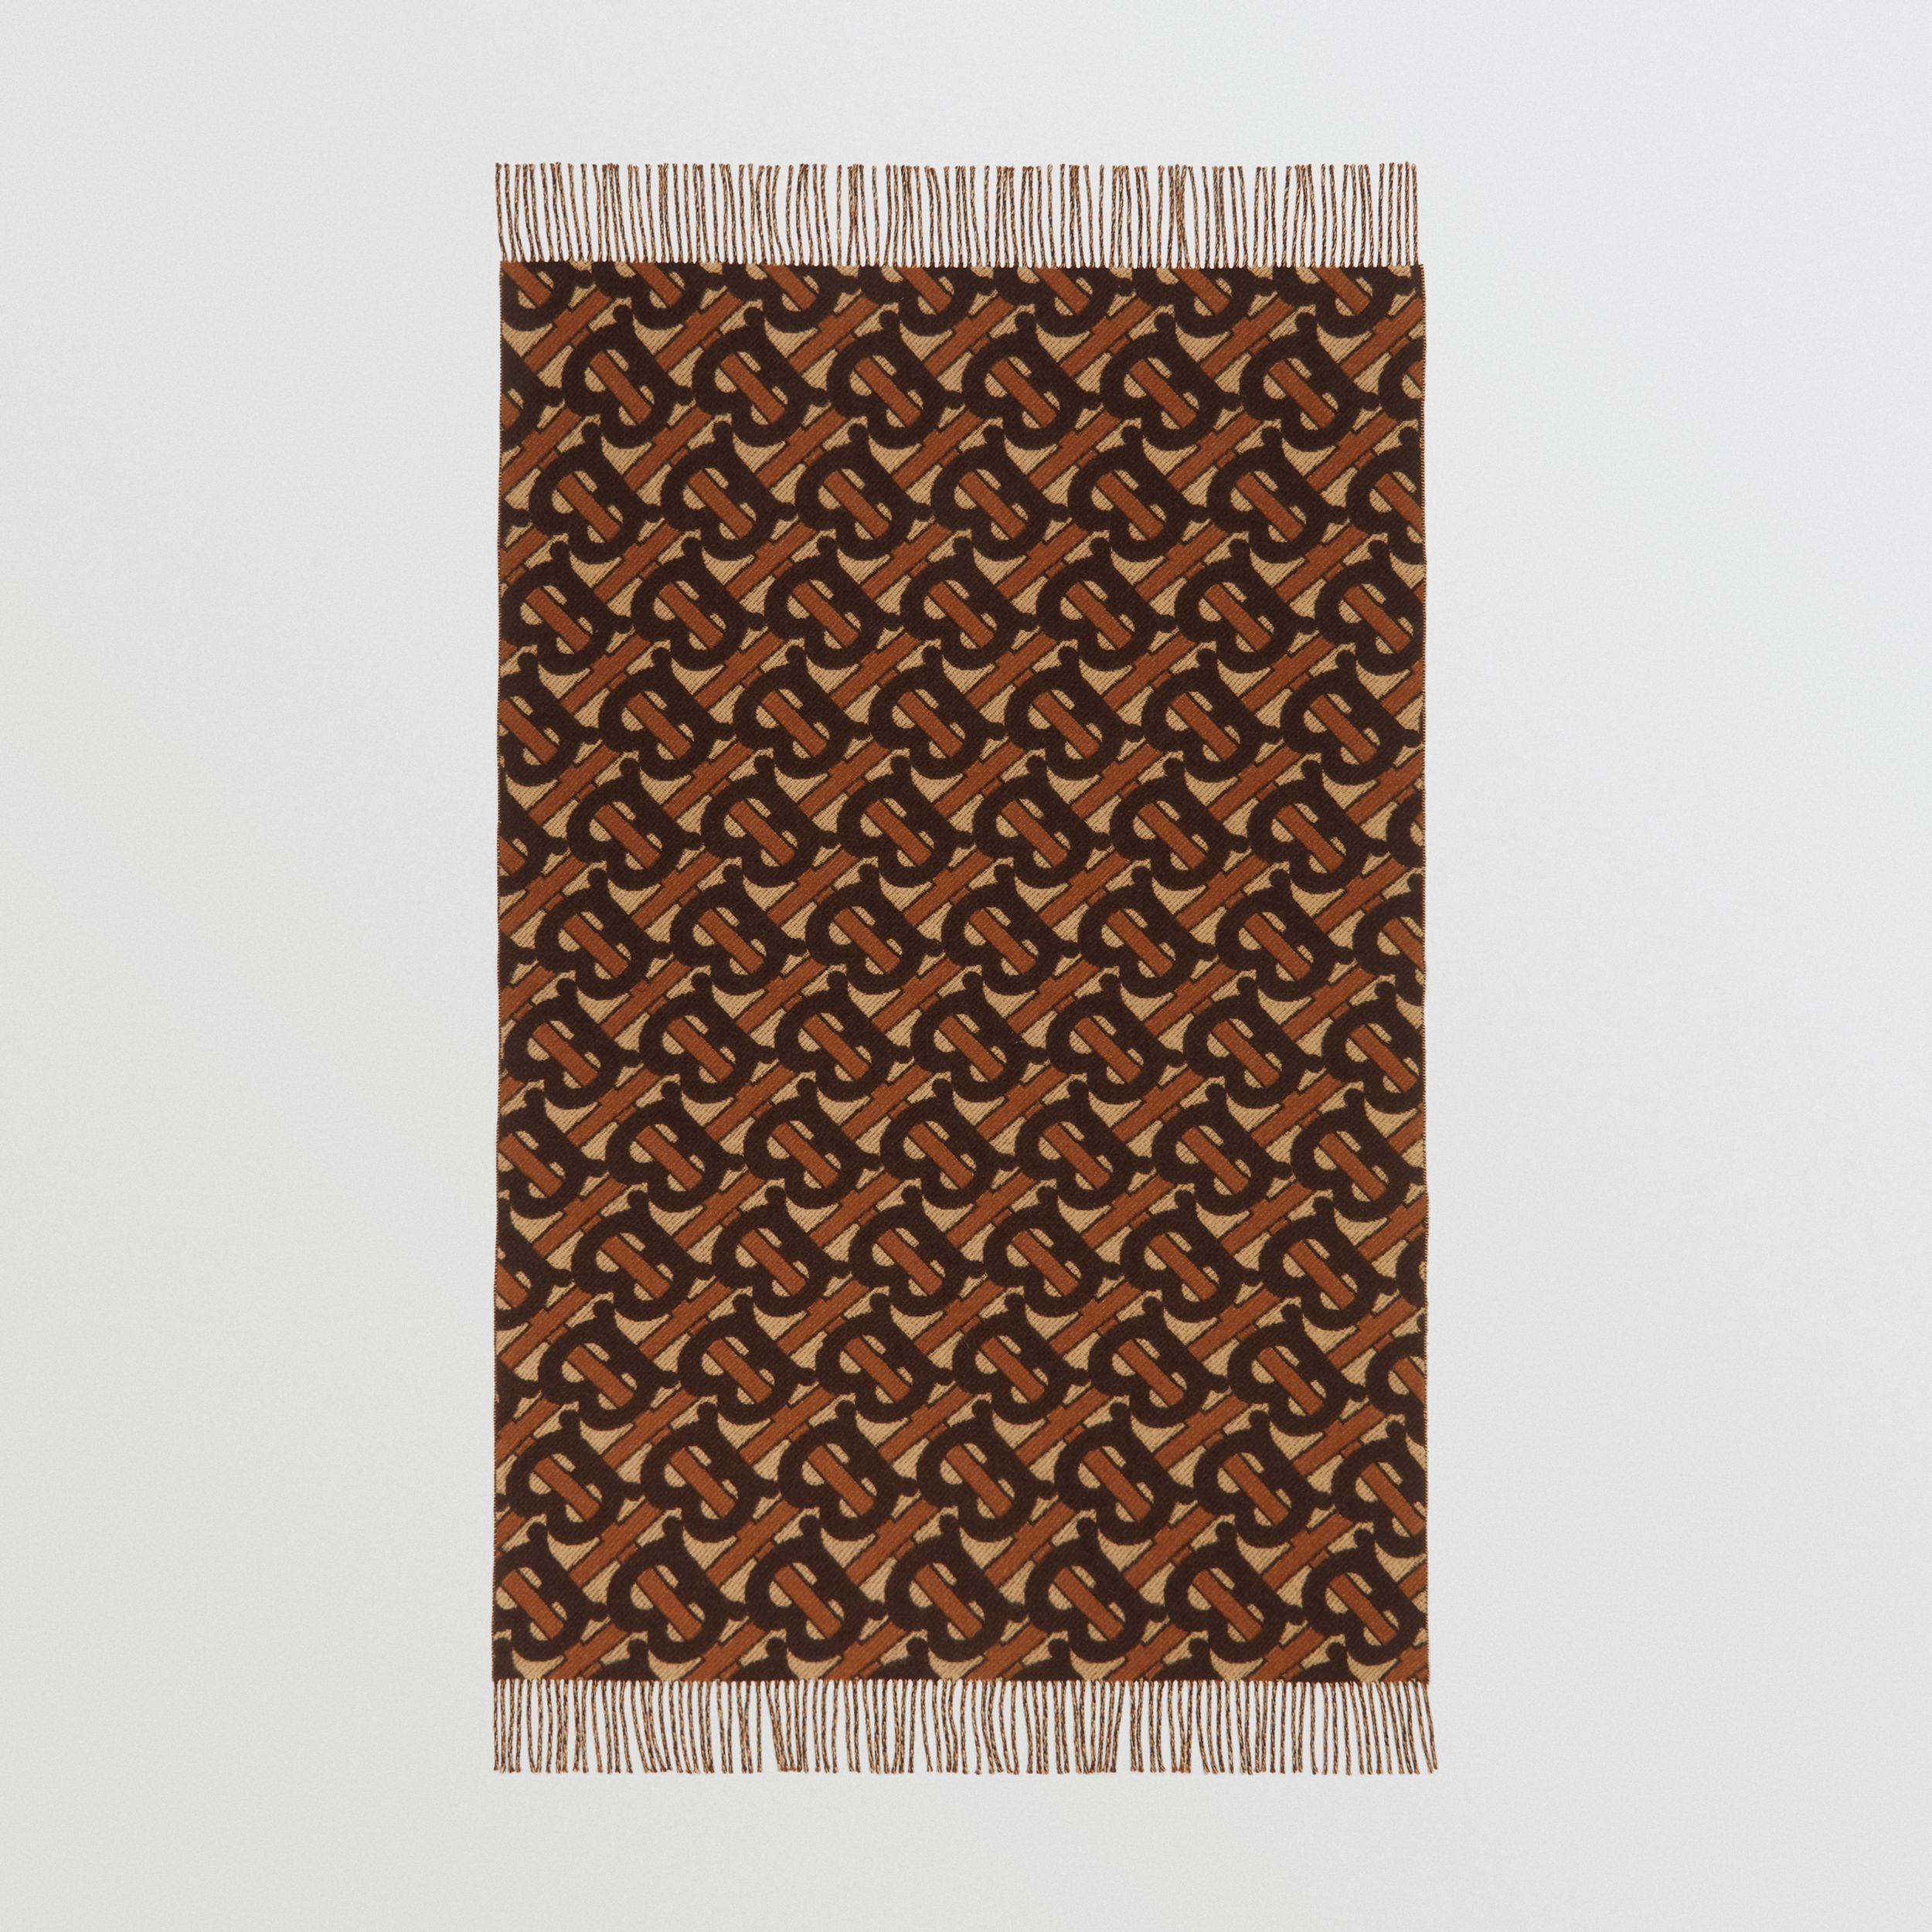 Monogram Merino Wool Cashmere Jacquard Blanket in Deep Brown | Burberry - 3